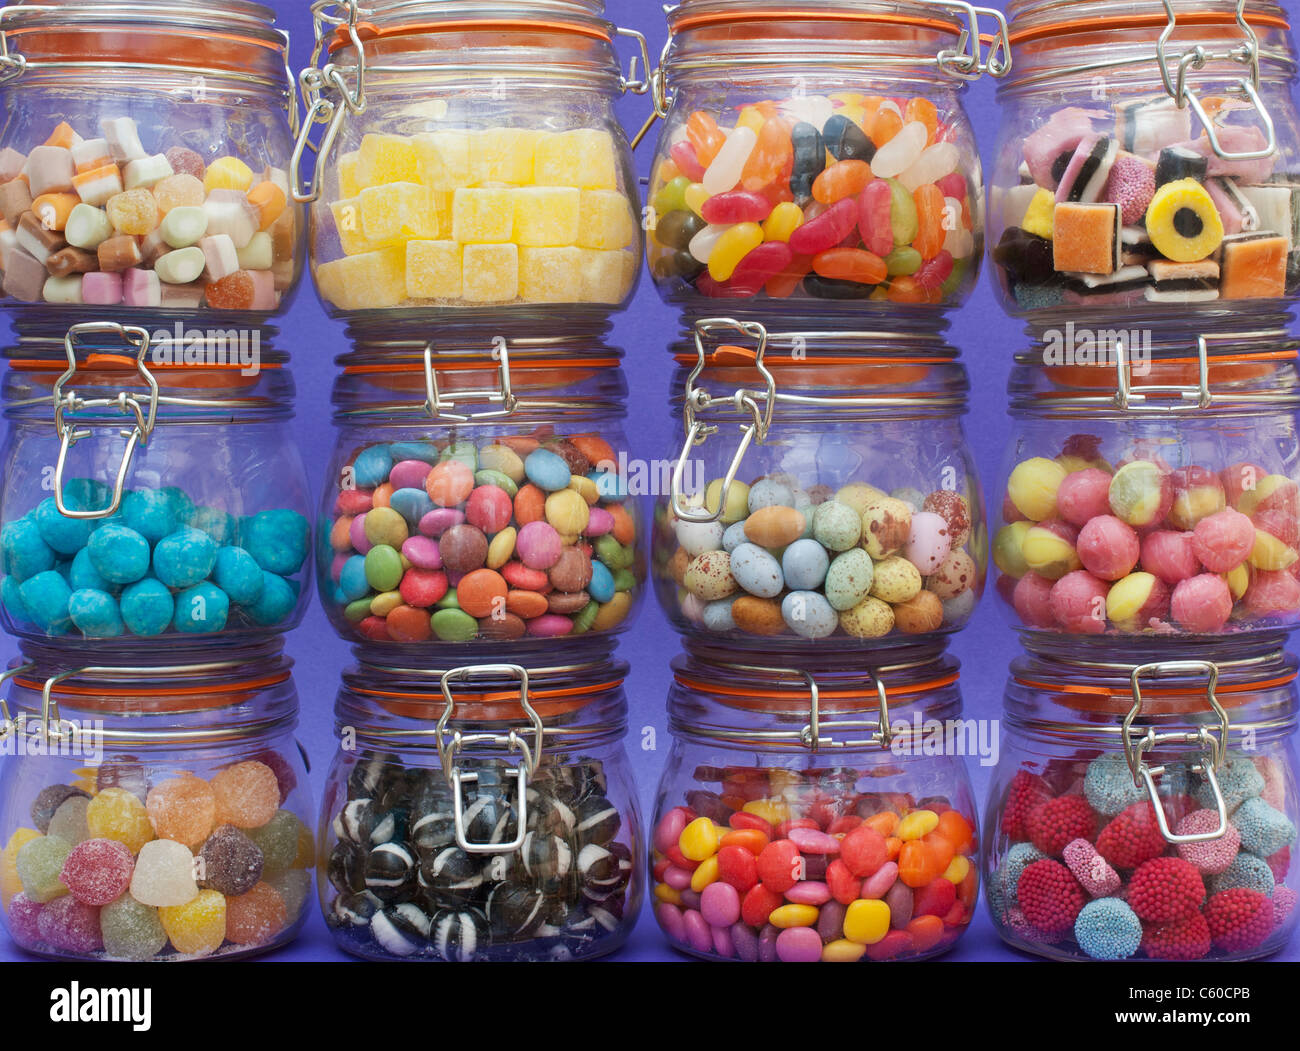 Colourful childrens sweets in kilner jars. Liquorice allsorts, Smarties, pineapple cubes, humbugs, bonbons, dolly - Stock Image